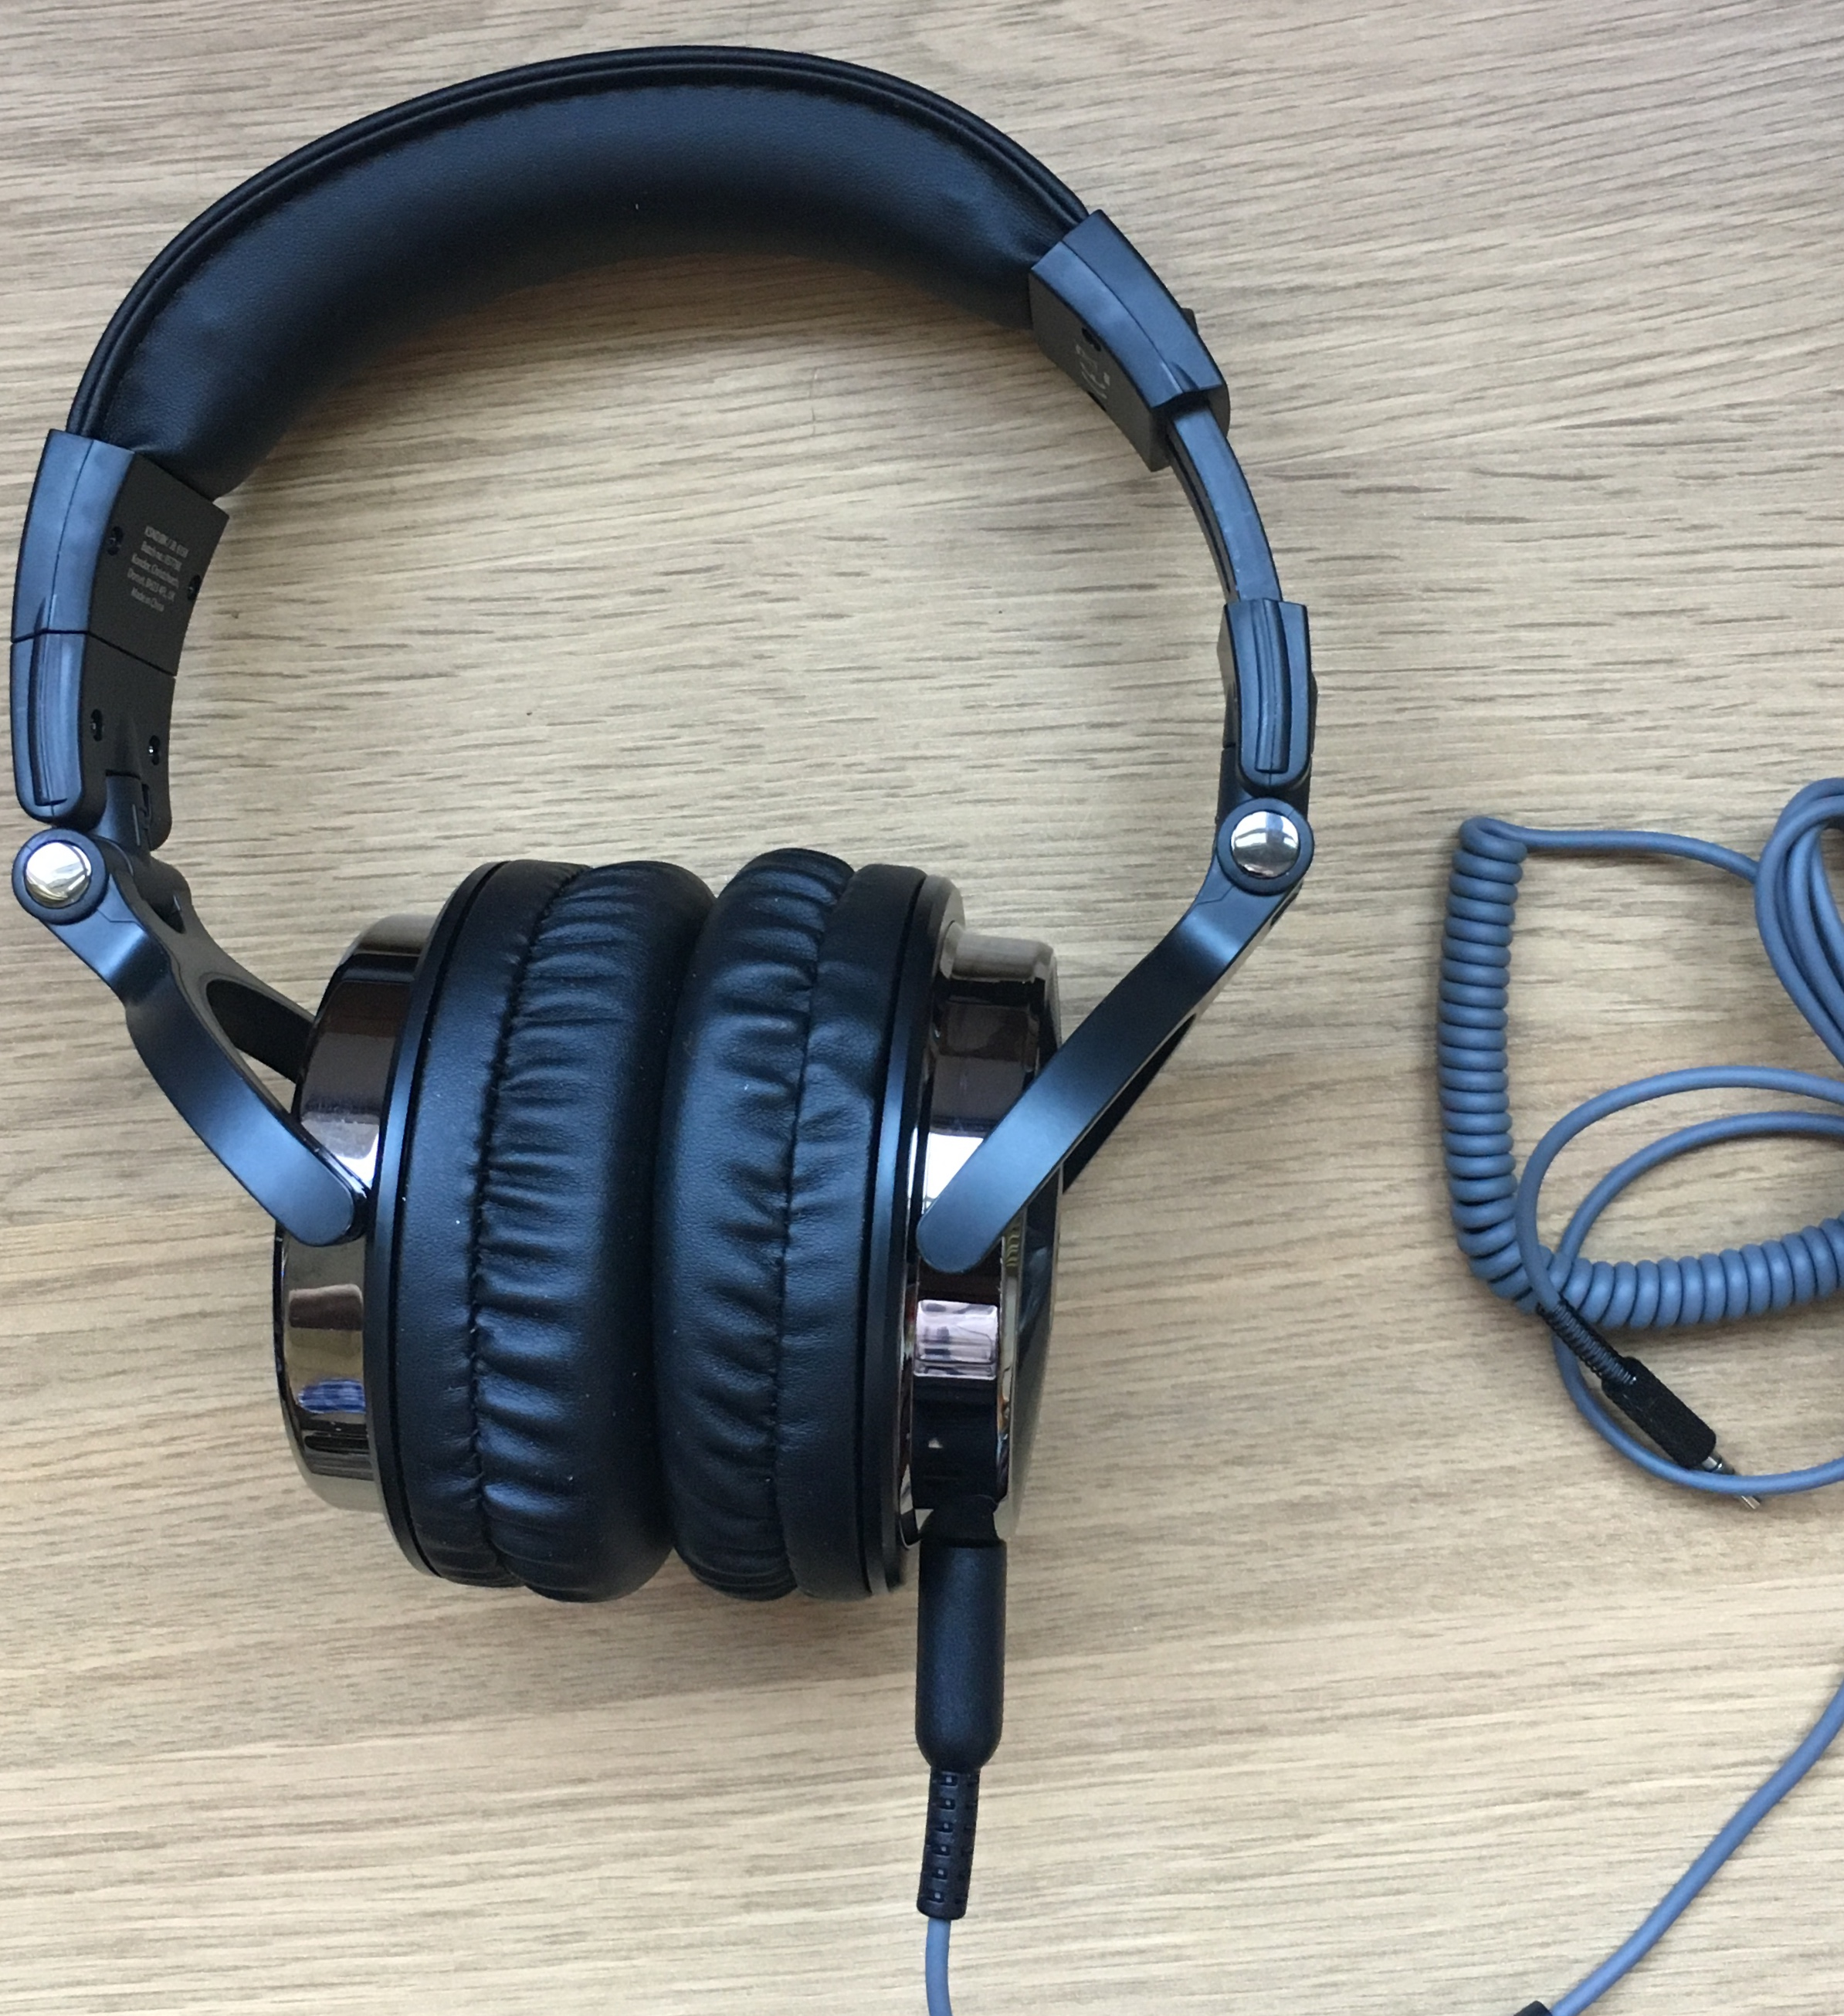 c65ffa54caf KitSound DJ 2 Wired Headphones - Review - Coolsmartphone